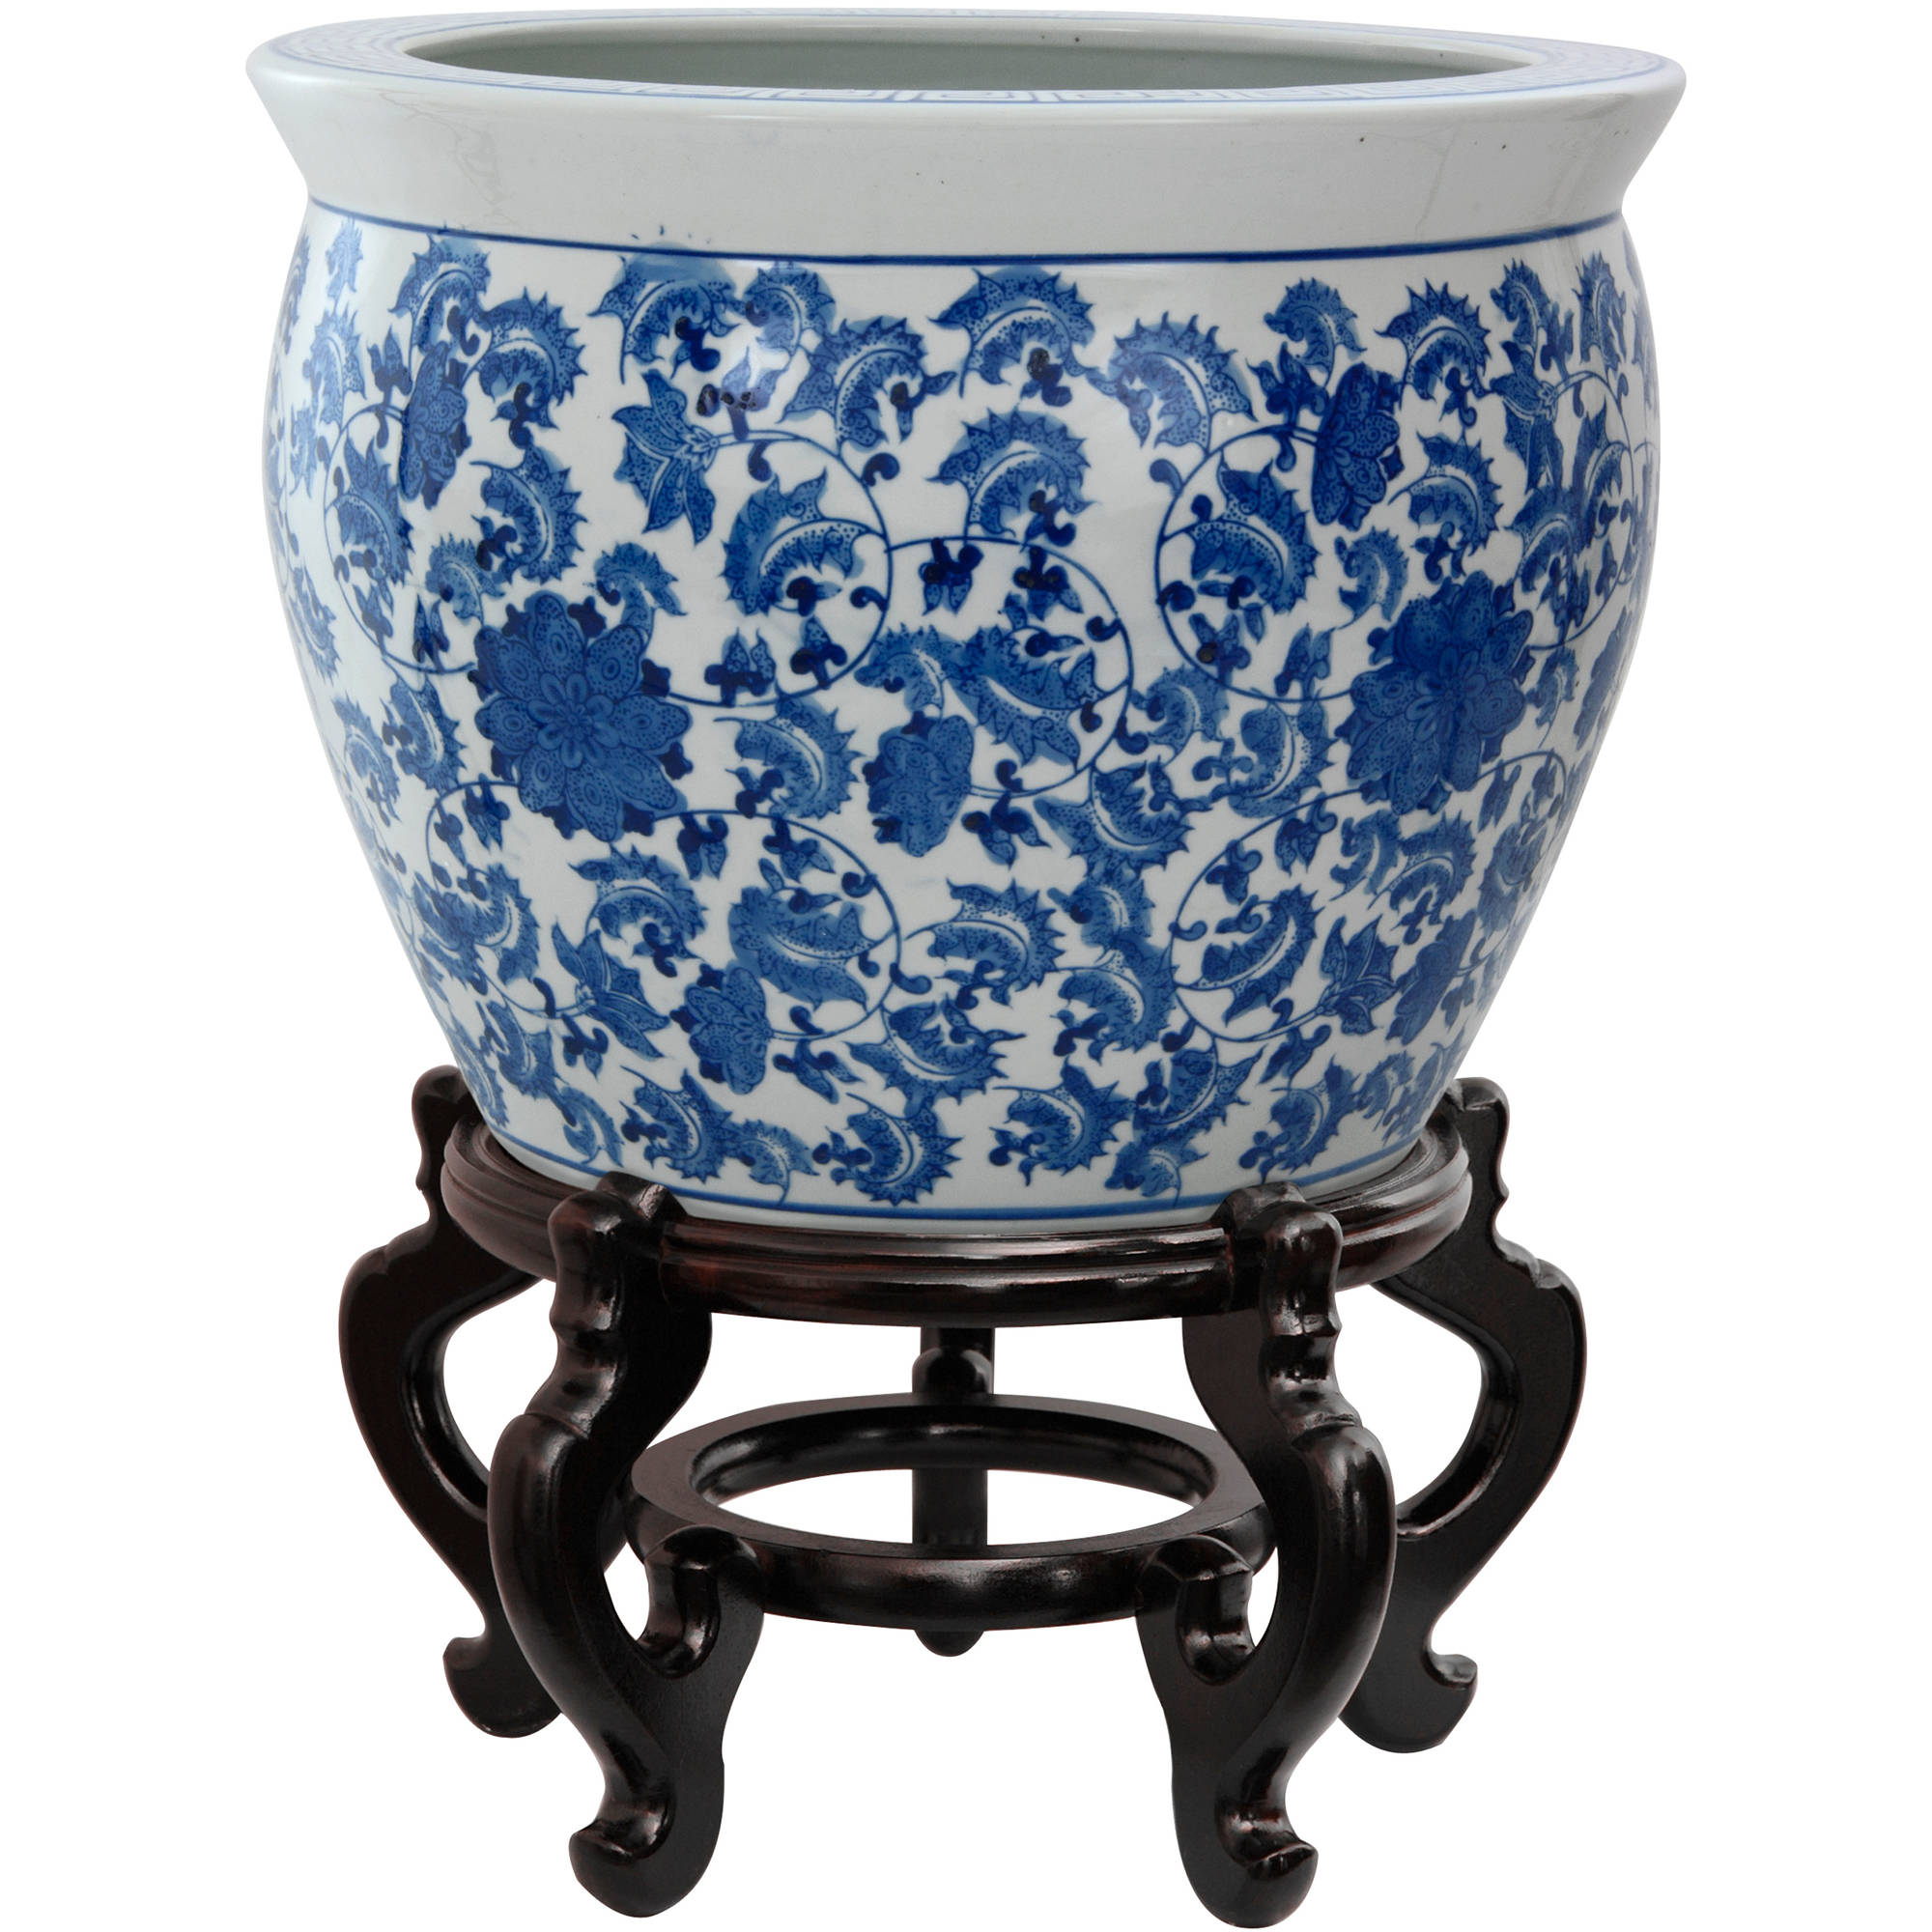 "14"" Floral Blue & White Porcelain Fishbowl by Oriental Furniture"